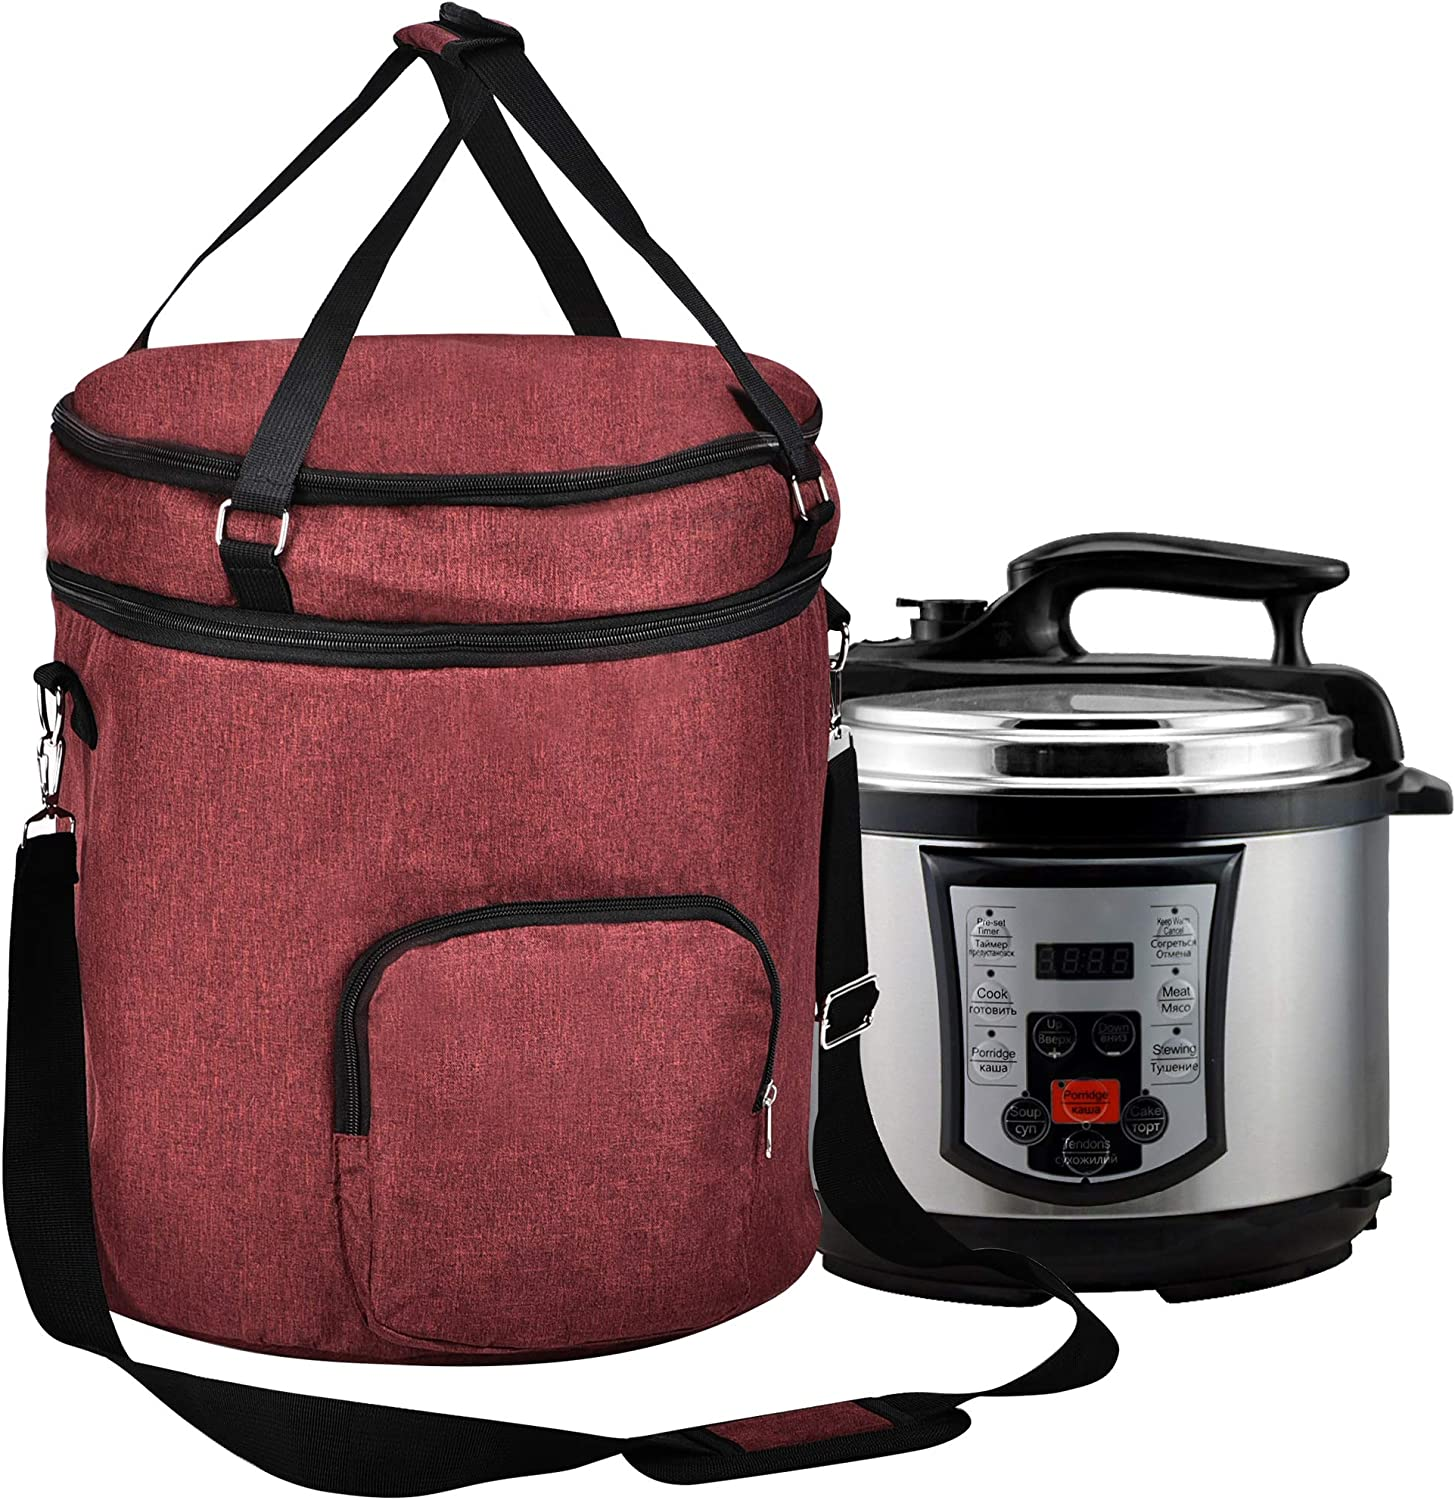 Pressure Cooker Travel Tote Bag, 2 Compartments Travel Tote Case for Cooker Accessories,Kitchen Round Applicances Storage Bag(Enclosed on the Bottom) (Wine Red, Fit for 6 QT Instant Pot)